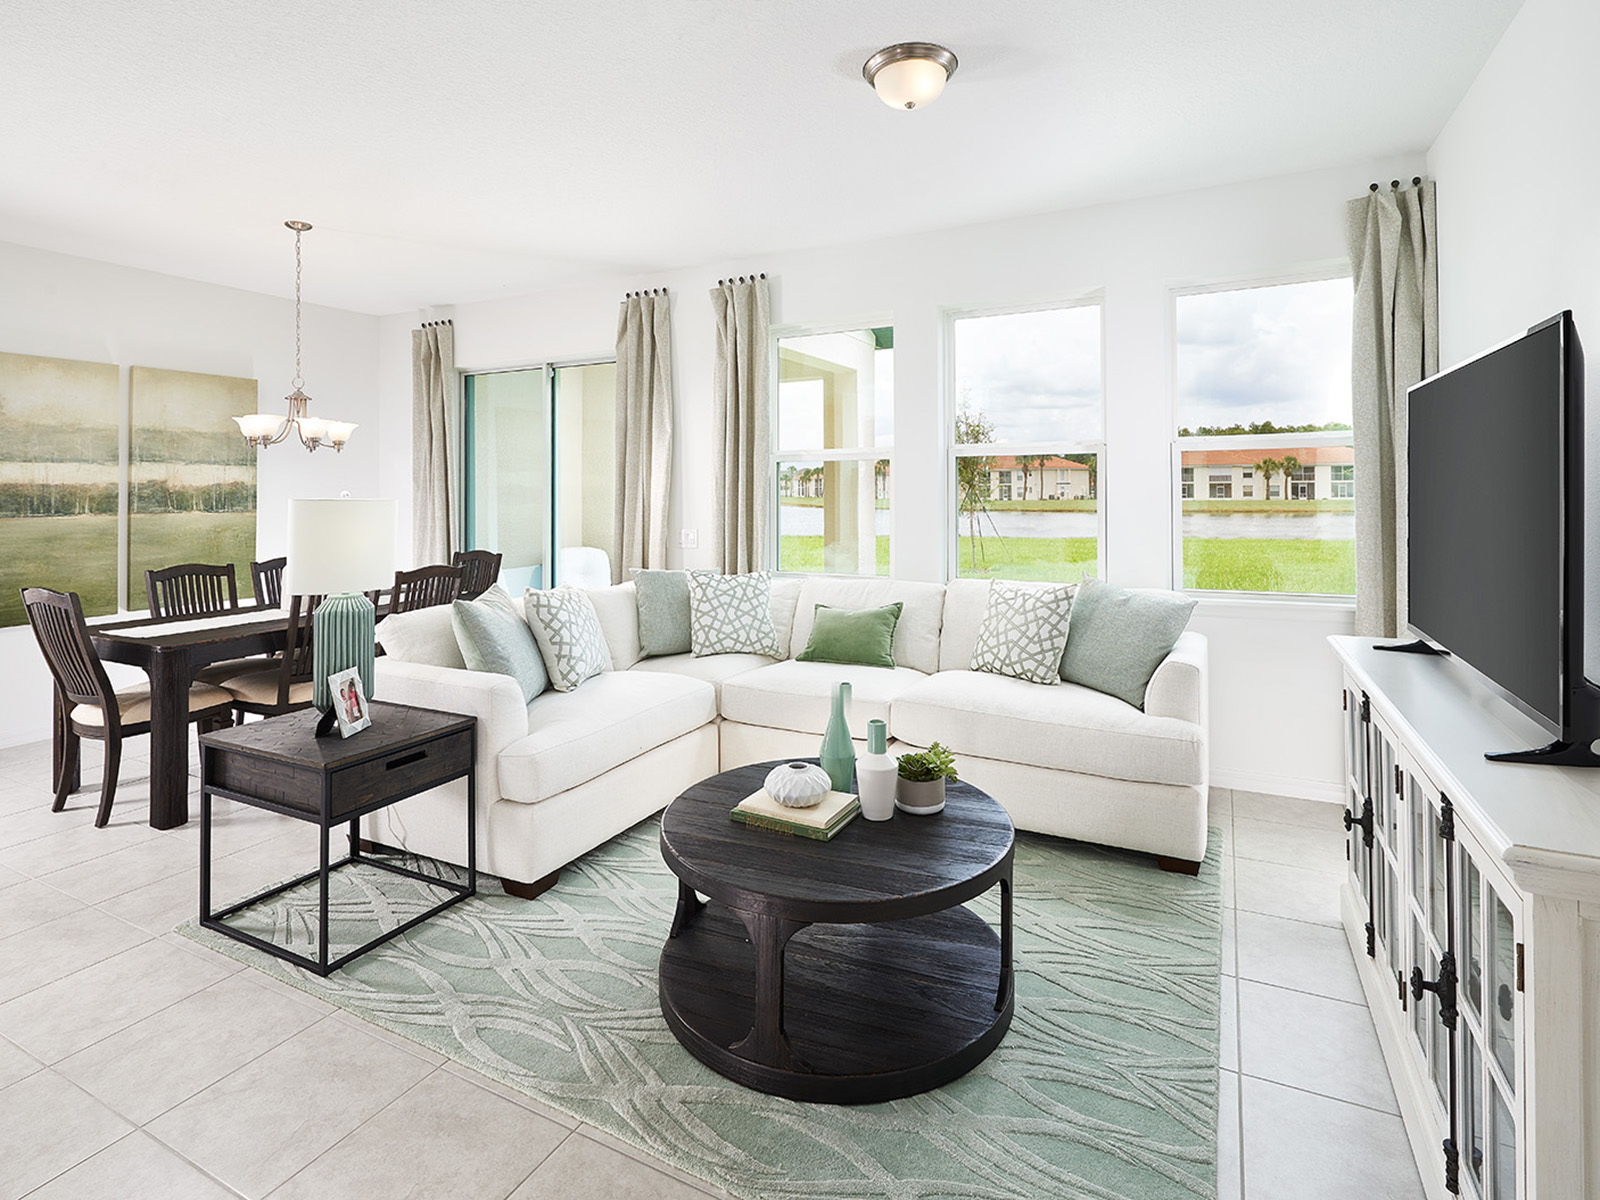 Arbors at Meadow Woods by Meritage Homes Orlando (855)588-6374